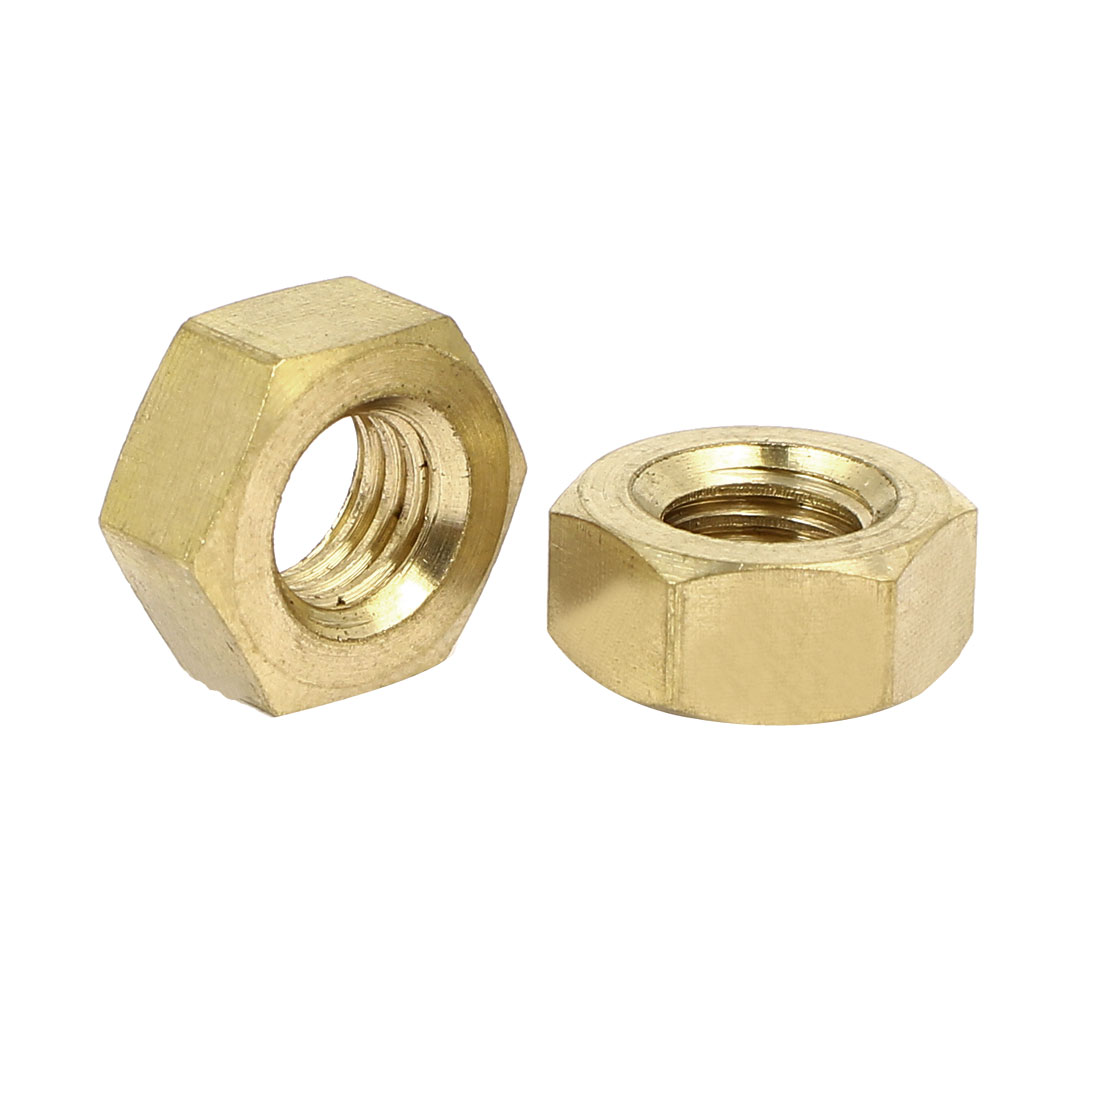 M10 Brass Finished Metric Hex Nut Fastener Brass Tone 10pcs - image 1 of 2